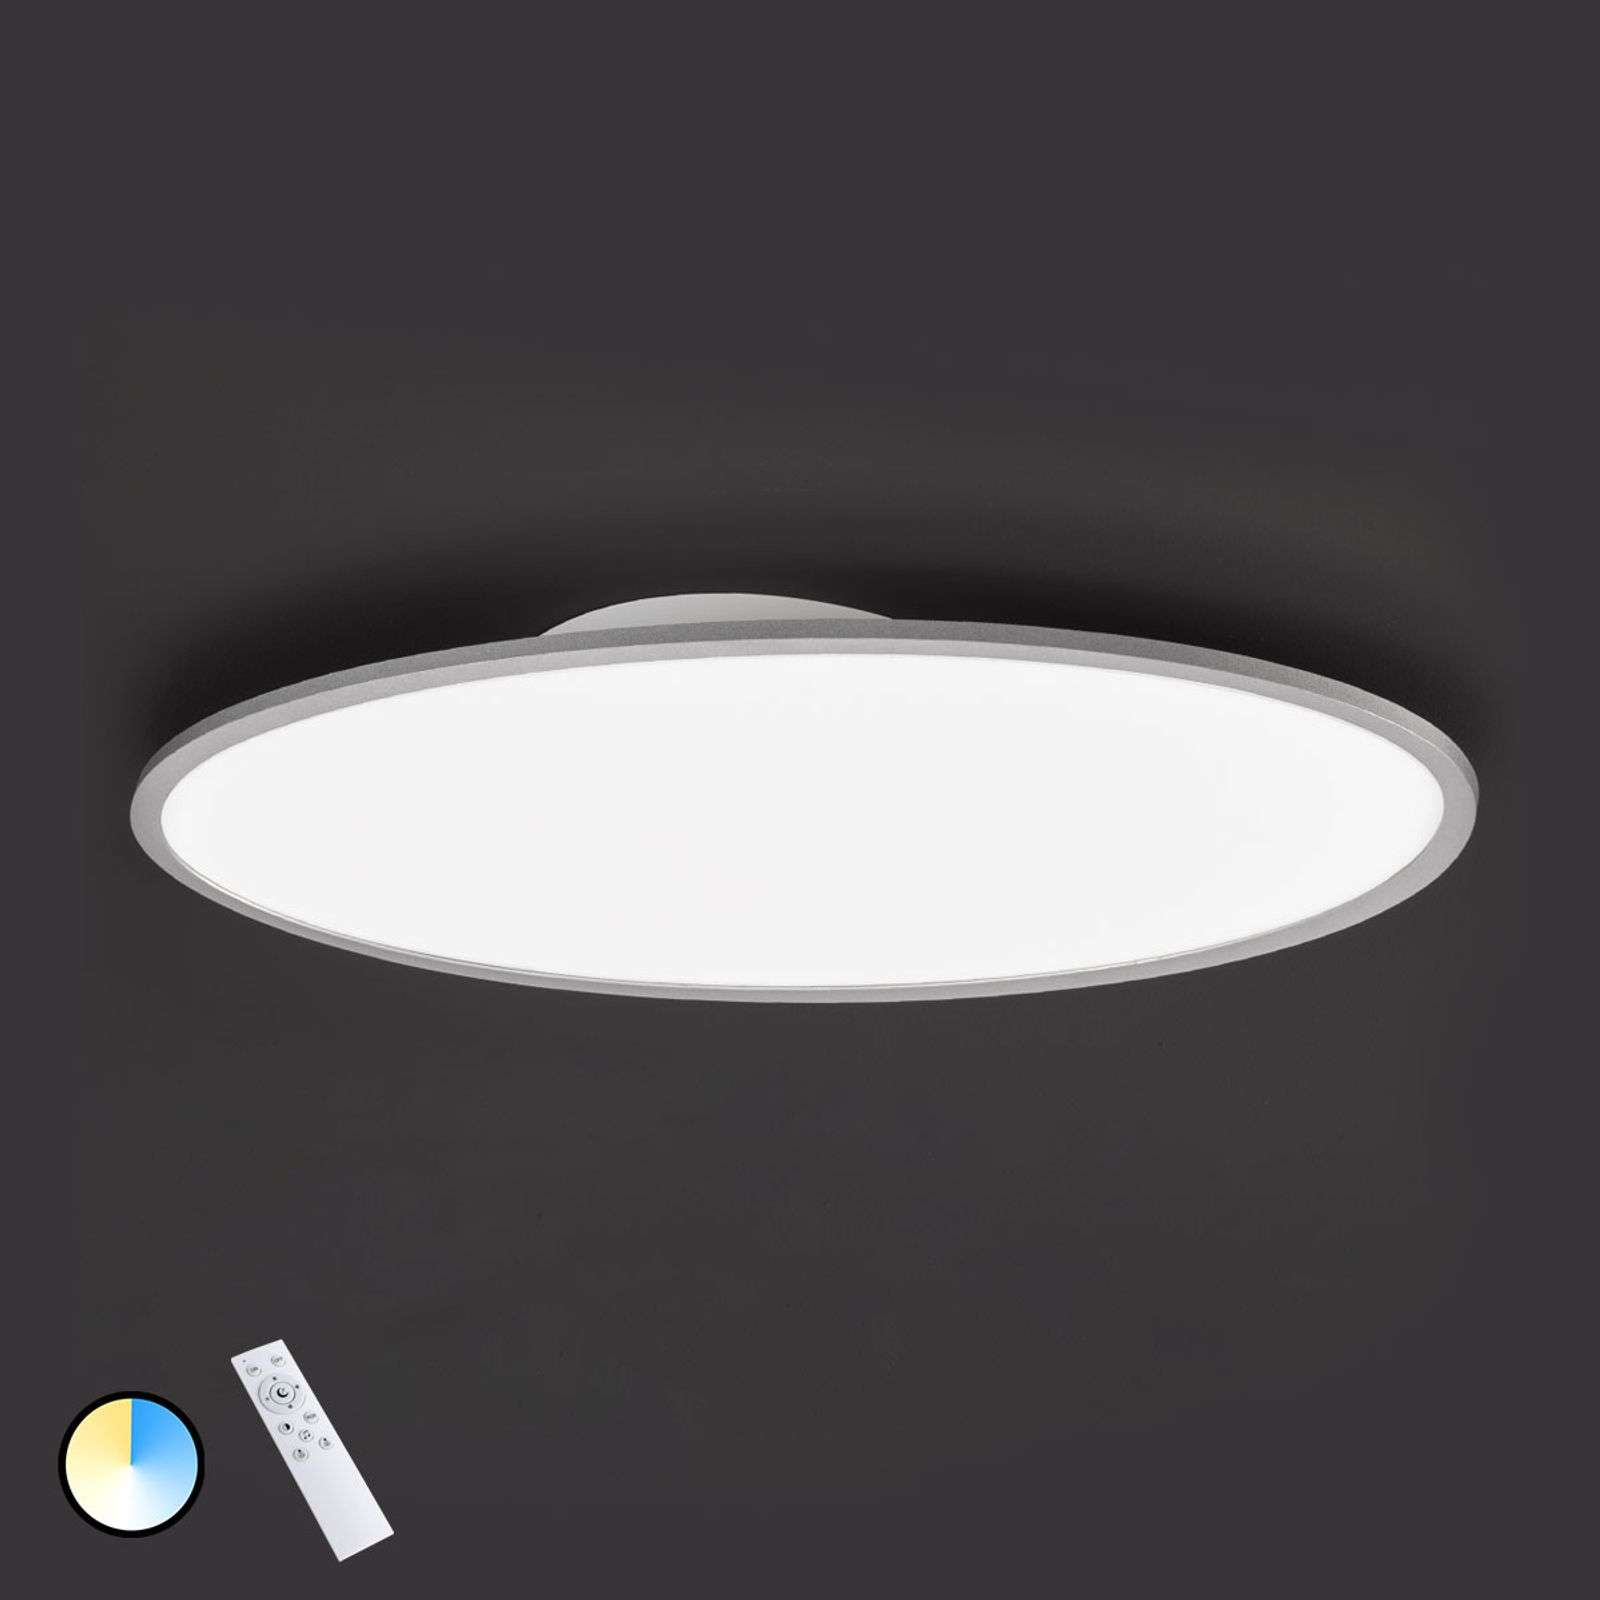 Plafonnier LED dimmable Valley, longueur 100 cm